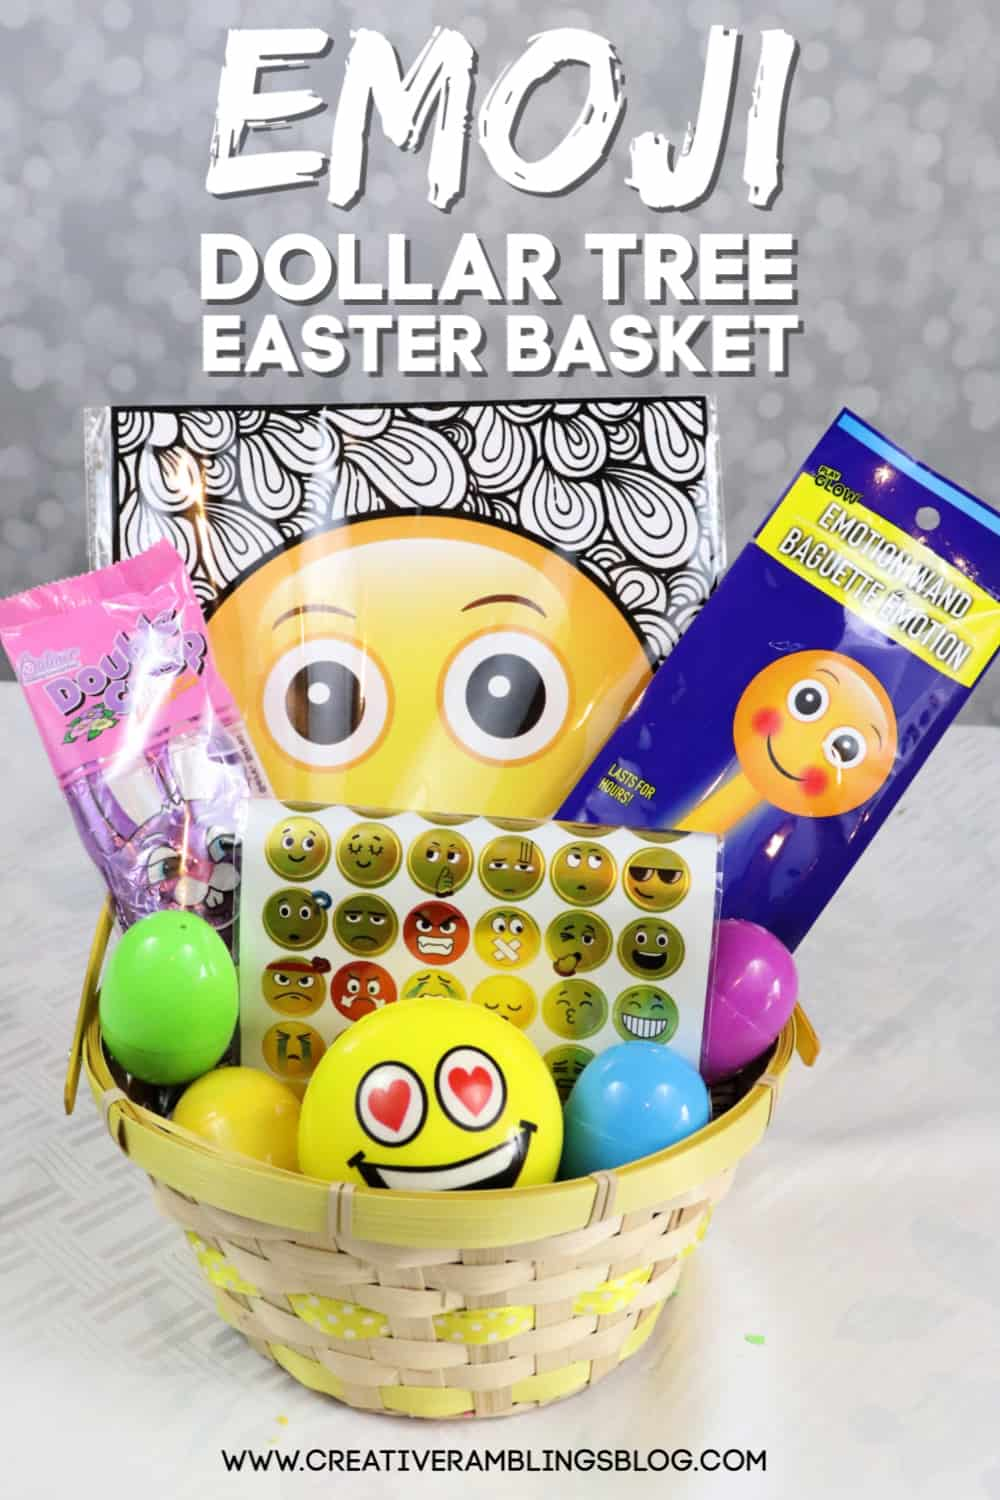 Dollar Tree Easter Basket Emoji